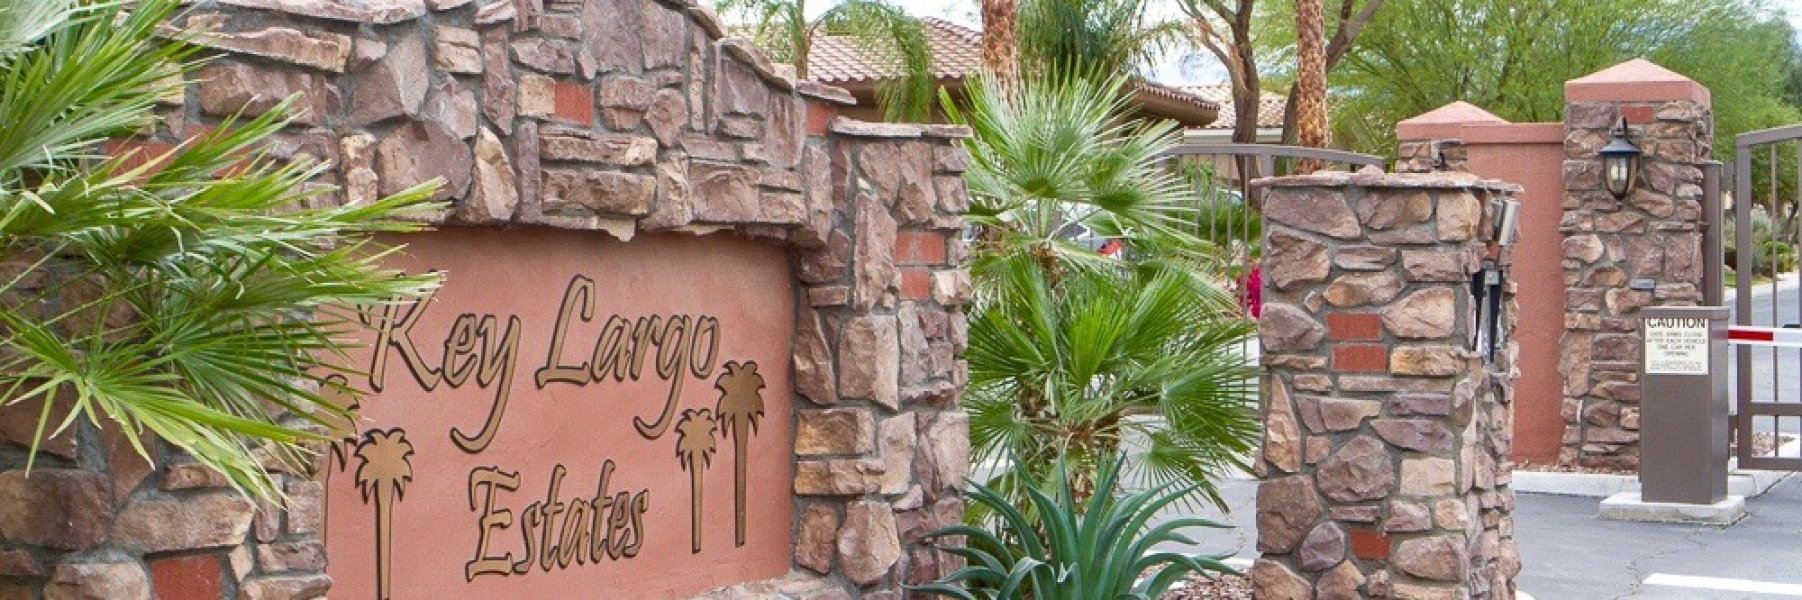 Key Largo is a community of homes in Rancho Mirage California